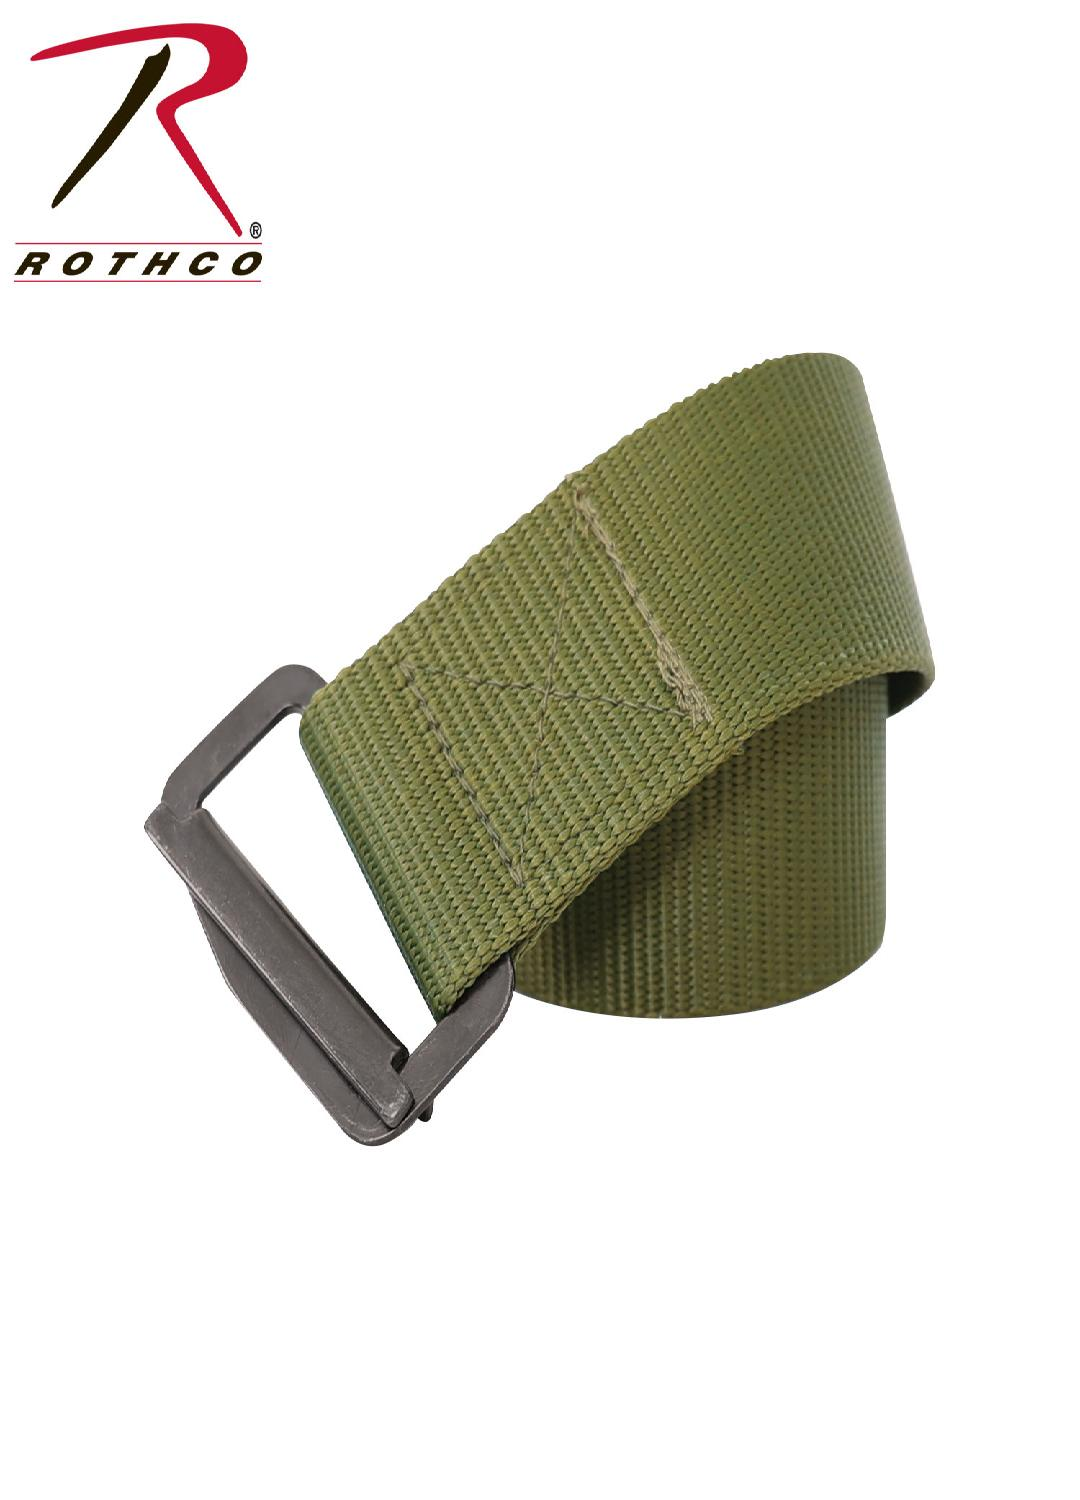 Rothco Heavy Duty Rigger's Belt - Olive Drab / 47 Inches